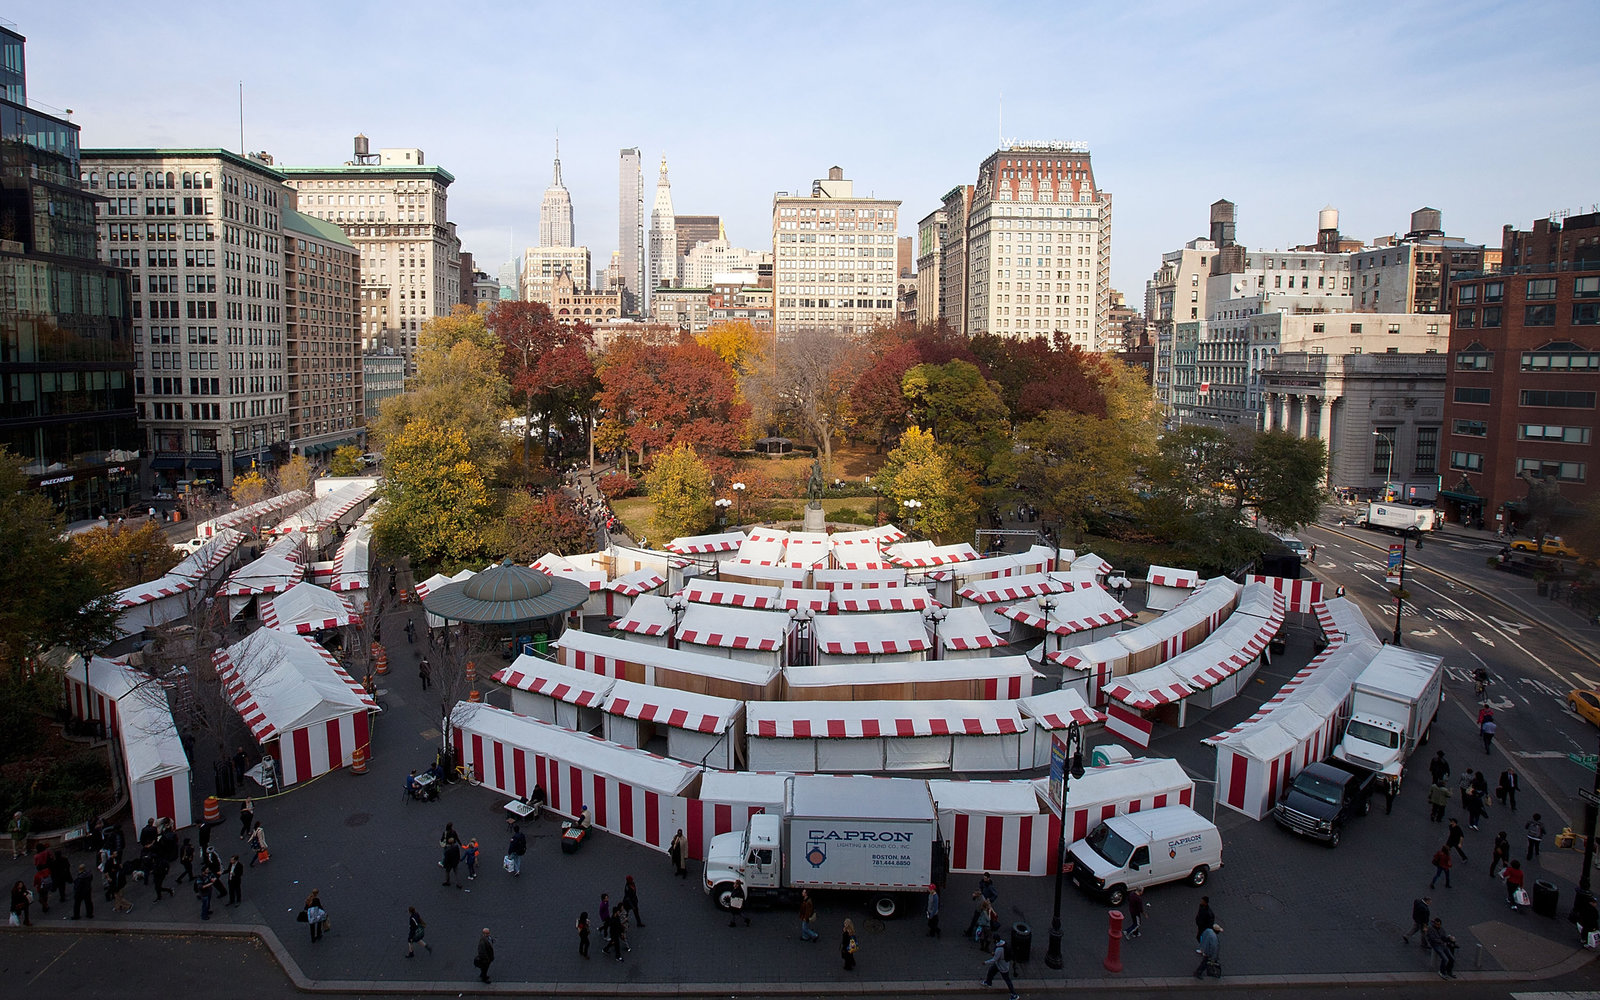 61 Days To Christmas Top 10 Places To Visit In New York City 15 days to christmas 61 Days To Christmas: Top 10 Places To Visit In New York City 🎄 61 Days To Christmas Top 10 Places To Visit In New York City 16